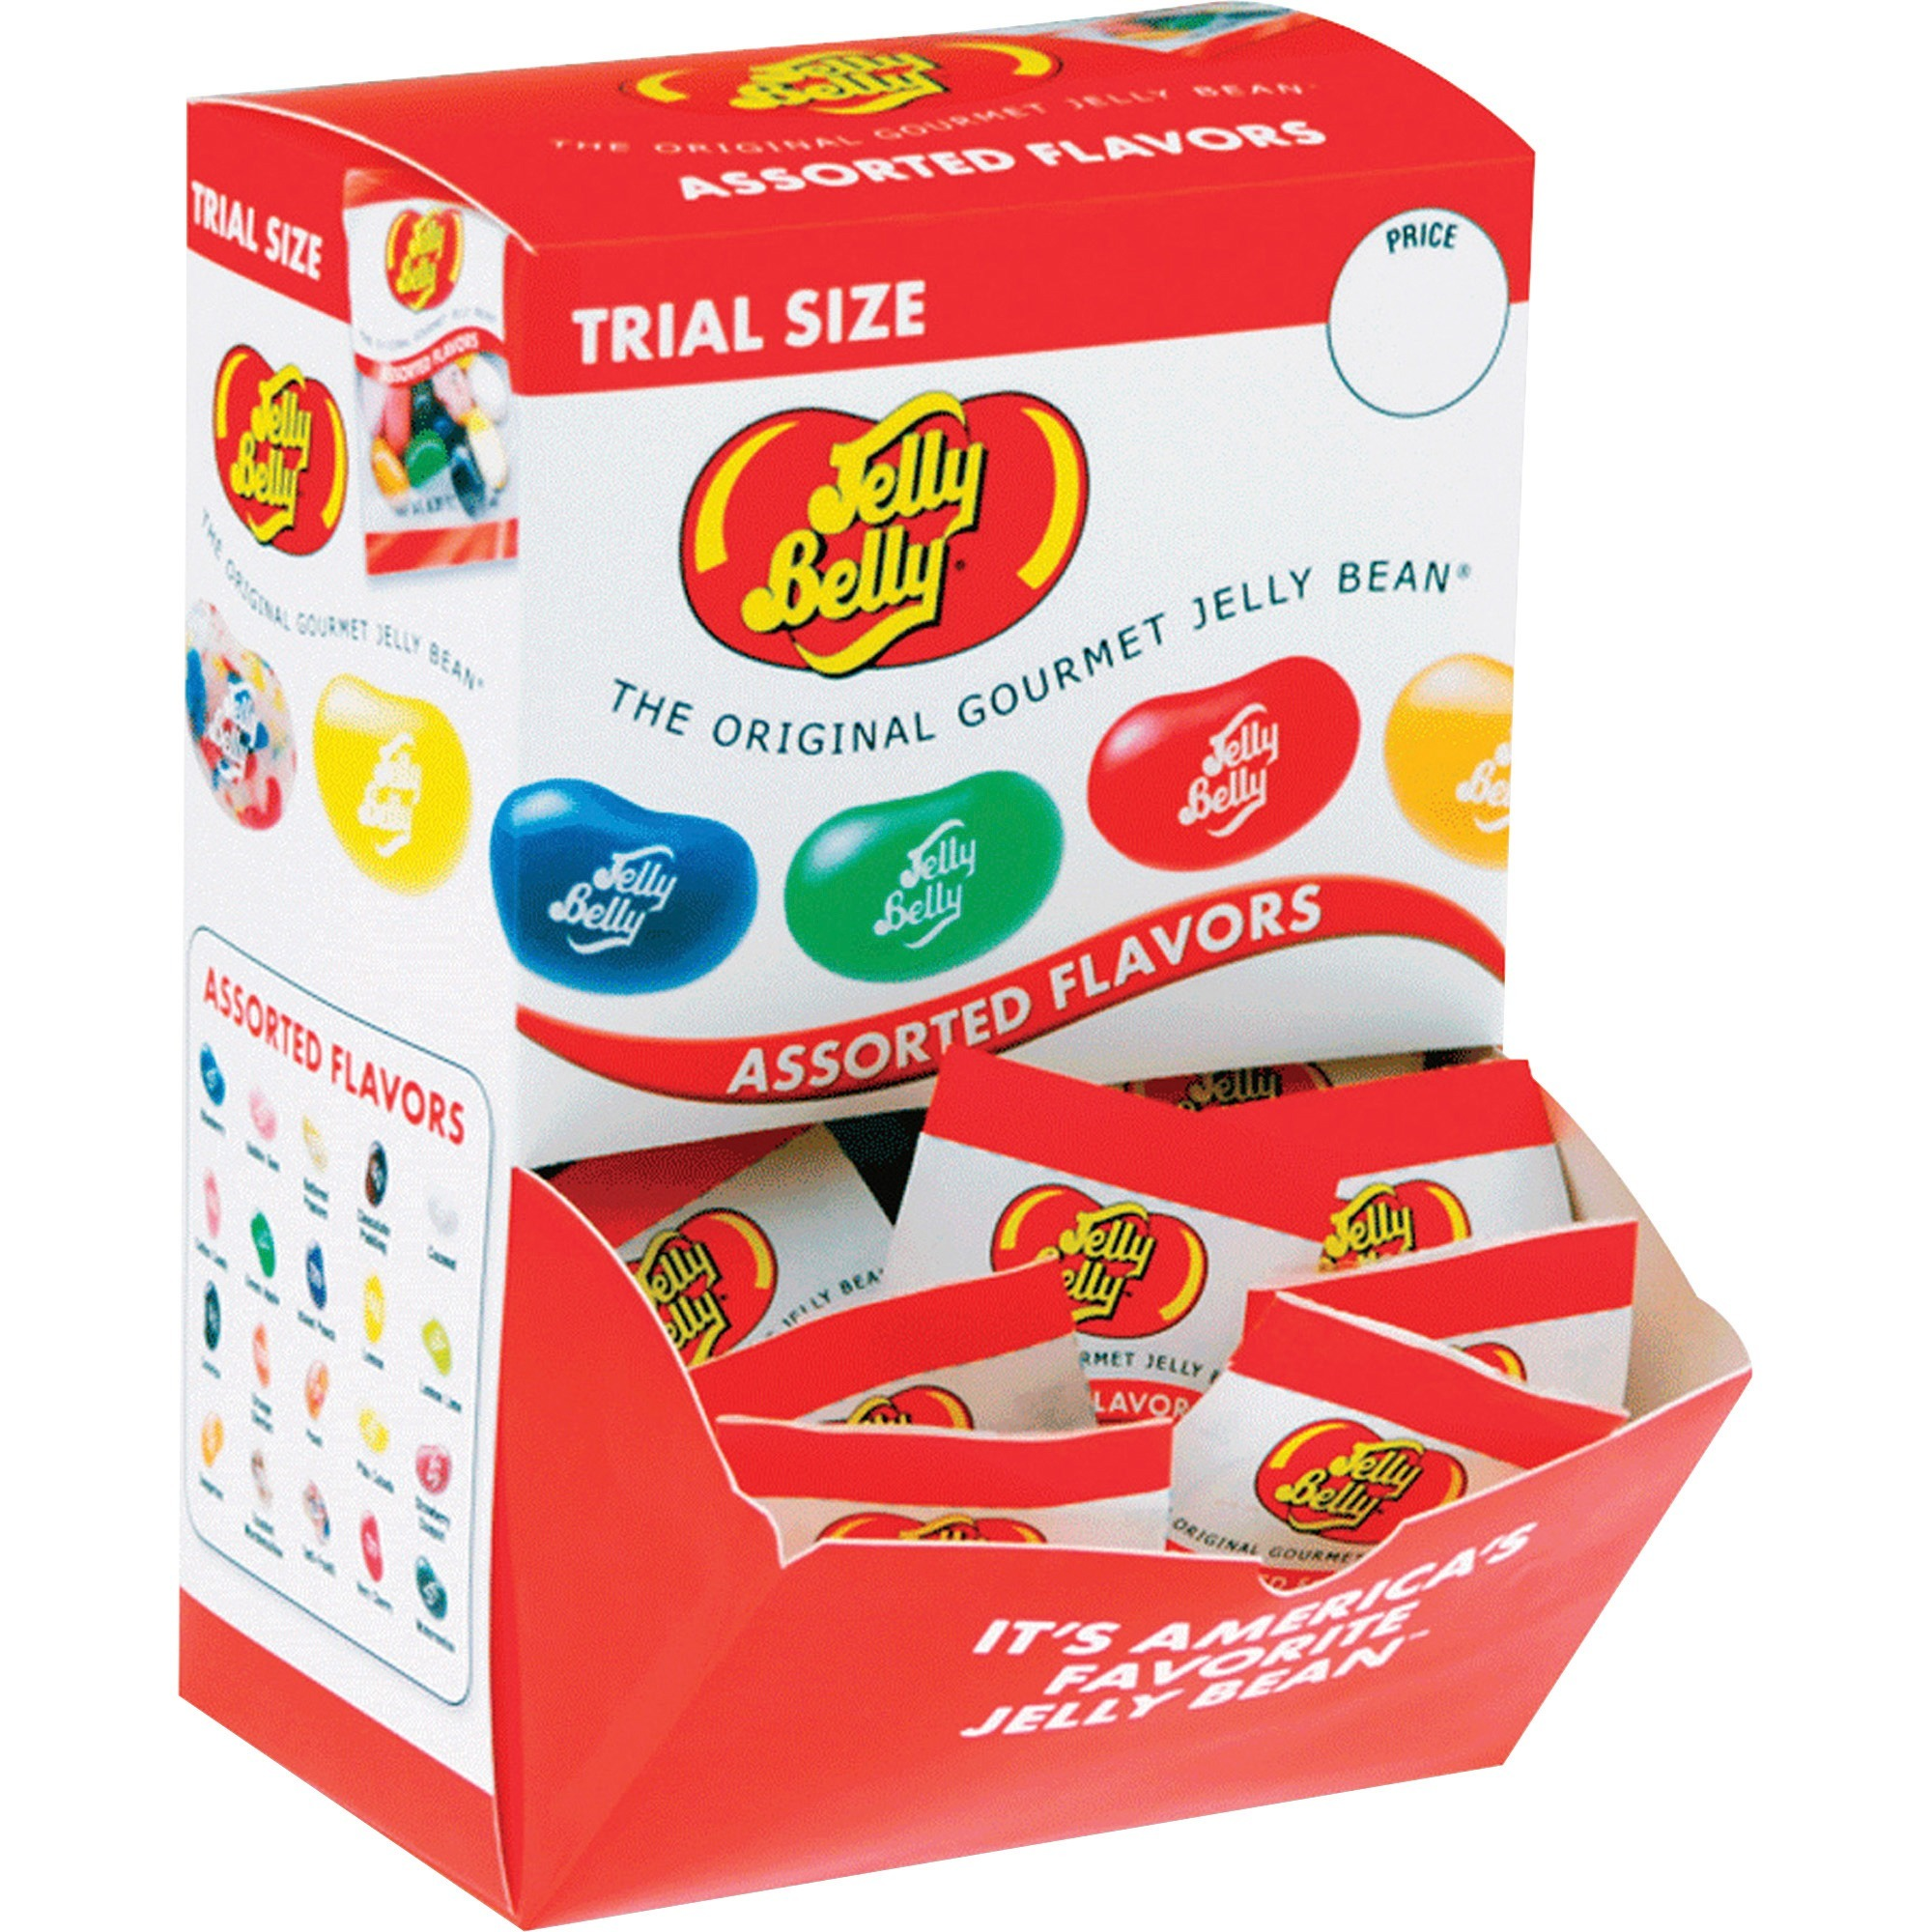 Jelly Belly, JLL72512, Gourmet Jelly Beans, 80 / Box